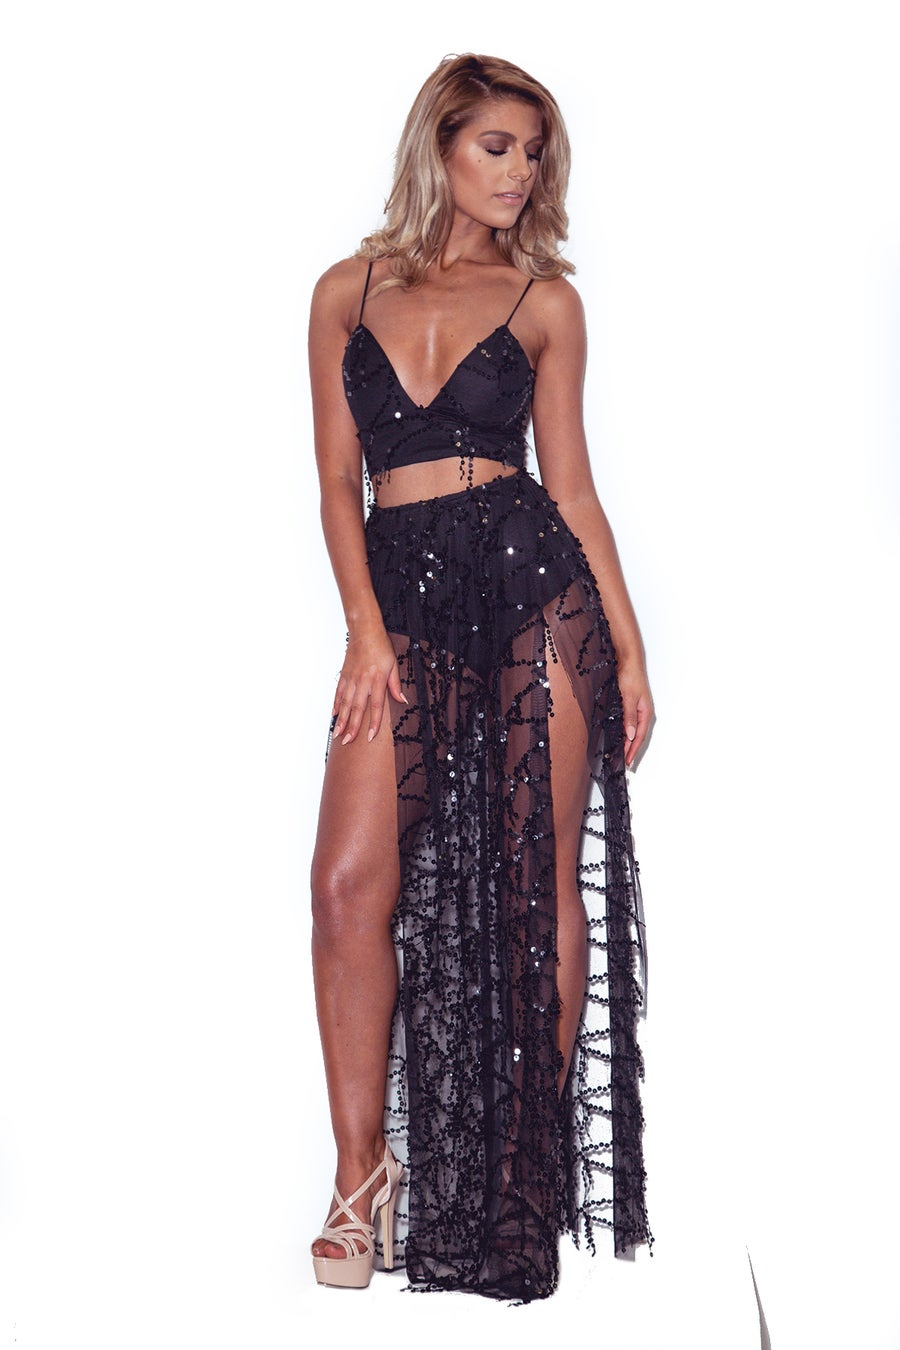 Image of 'Moondust' Maxi Two piece (60% off)